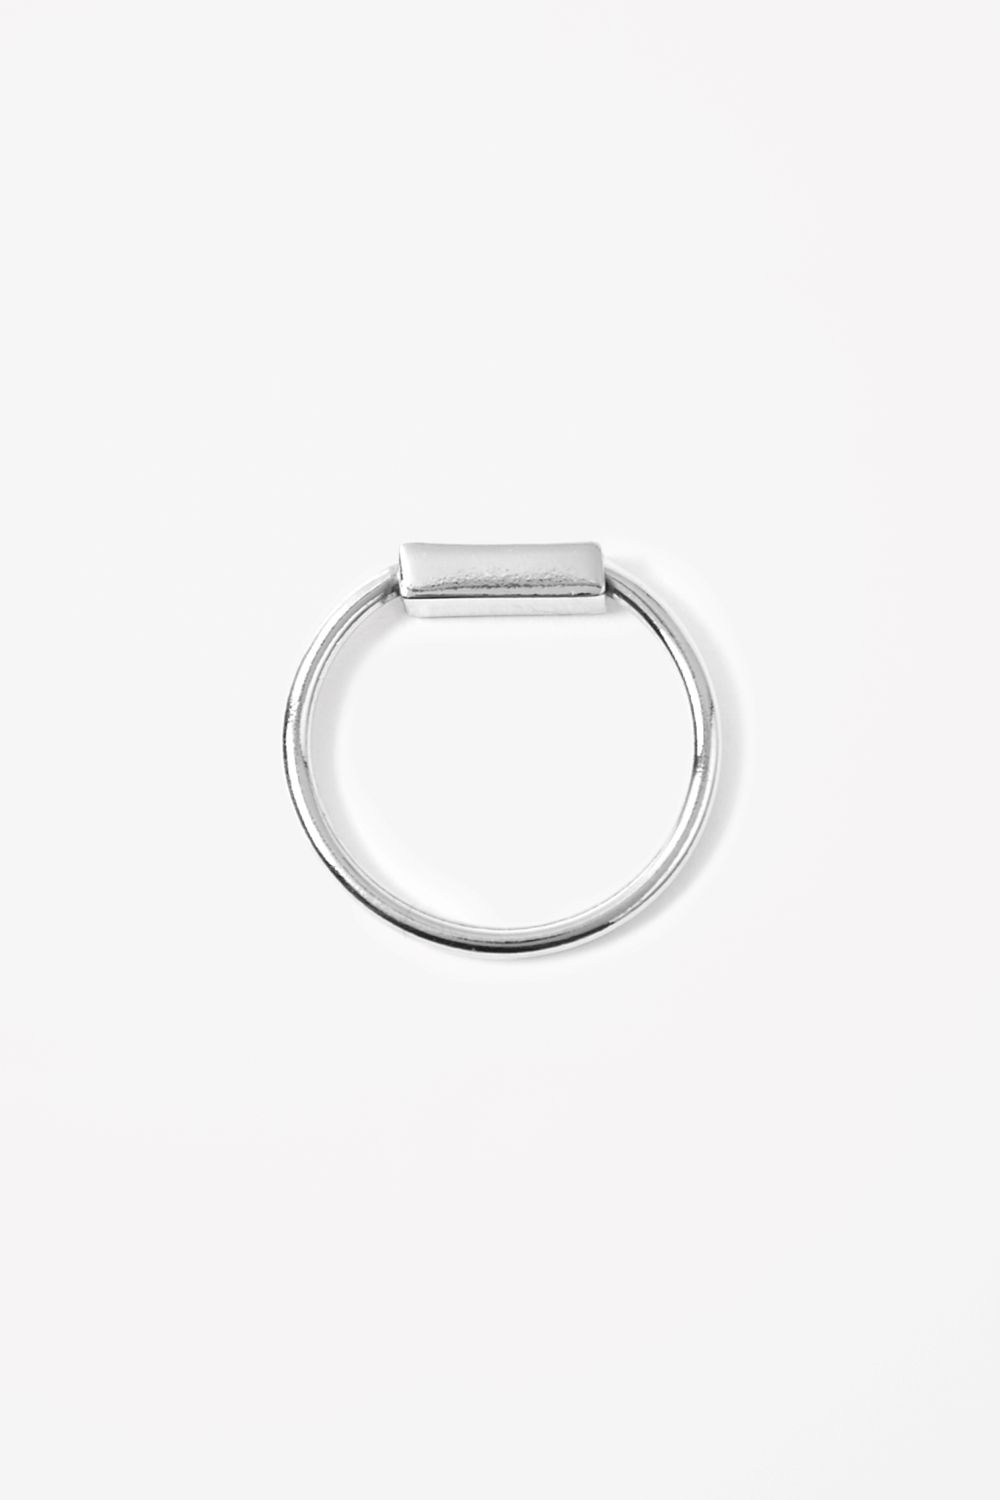 COS Silver ring